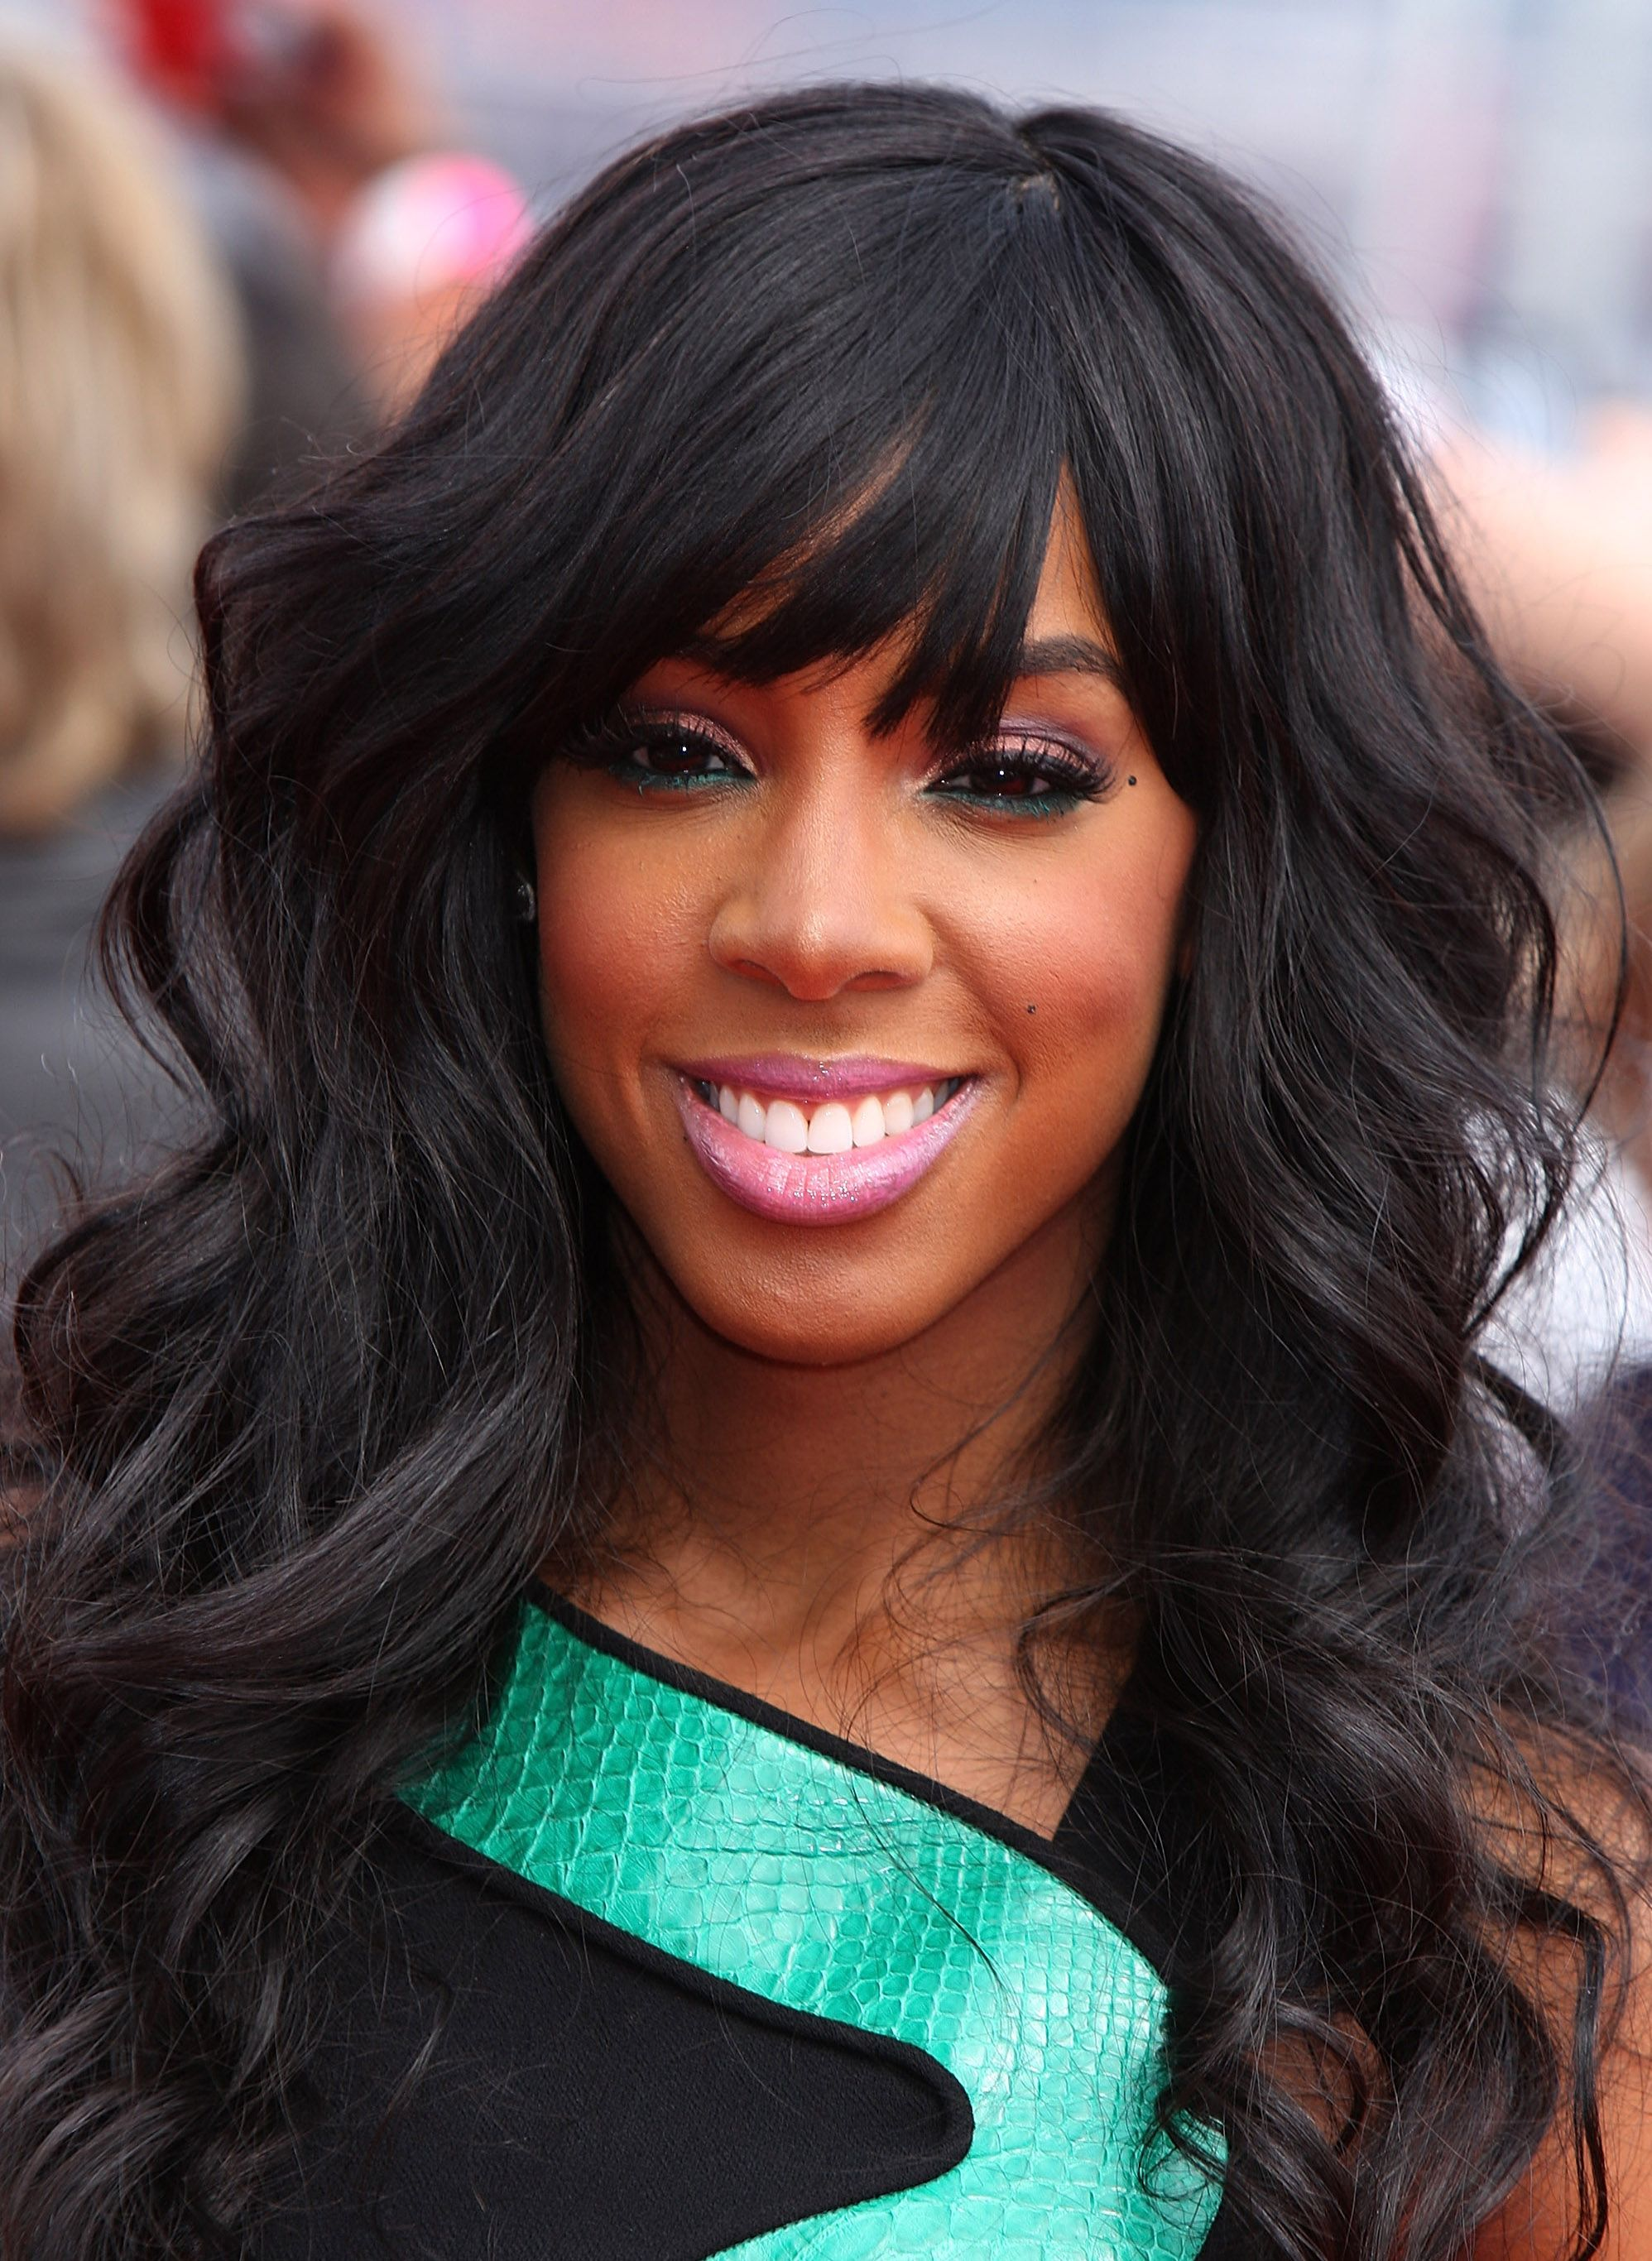 kelly rowland commanderkelly rowland work, kelly rowland – invincible, kelly rowland work скачать, kelly rowland commander, kelly rowland – invincible ноты, kelly rowland dilemma, kelly rowland песни, kelly rowland work mp3, kelly rowland motivation, kelly rowland down for whatever, kelly rowland – invincible  ноты для фортепиано, kelly rowland work lyrics, kelly rowland motivation перевод, kelly rowland 2016, kelly rowland dilemma скачать, kelly rowland – invincible на пианино, kelly rowland what a feeling скачать, kelly rowland when love takes over, kelly rowland here i am, kelly rowland wiki